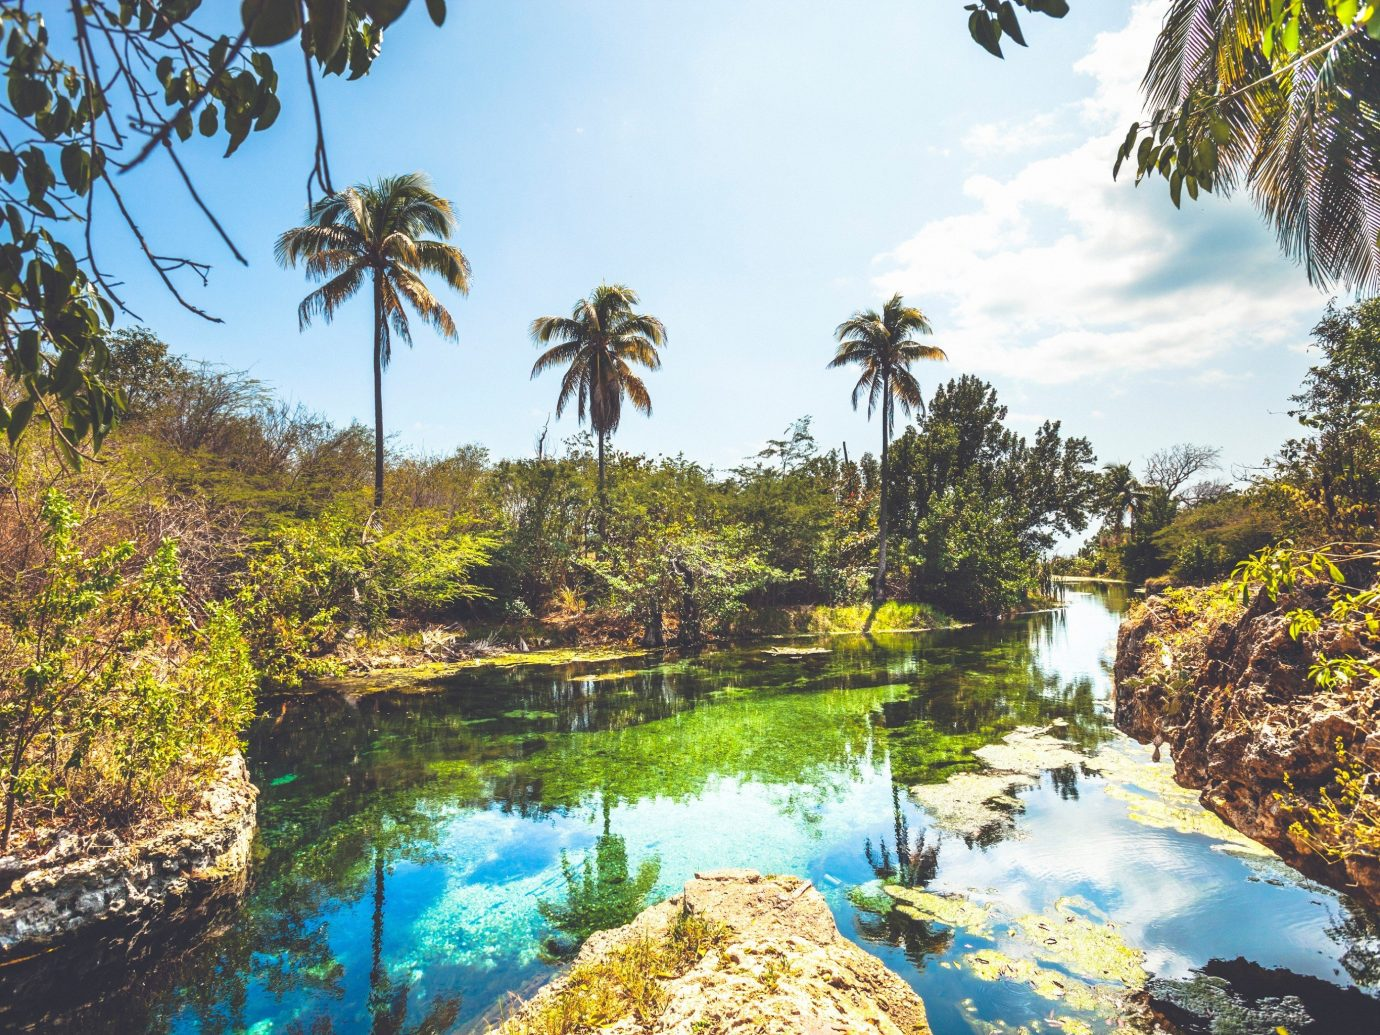 Trip Ideas tree outdoor Nature vegetation body of water water ecosystem arecales palm Jungle plant surrounded bushes pond Garden